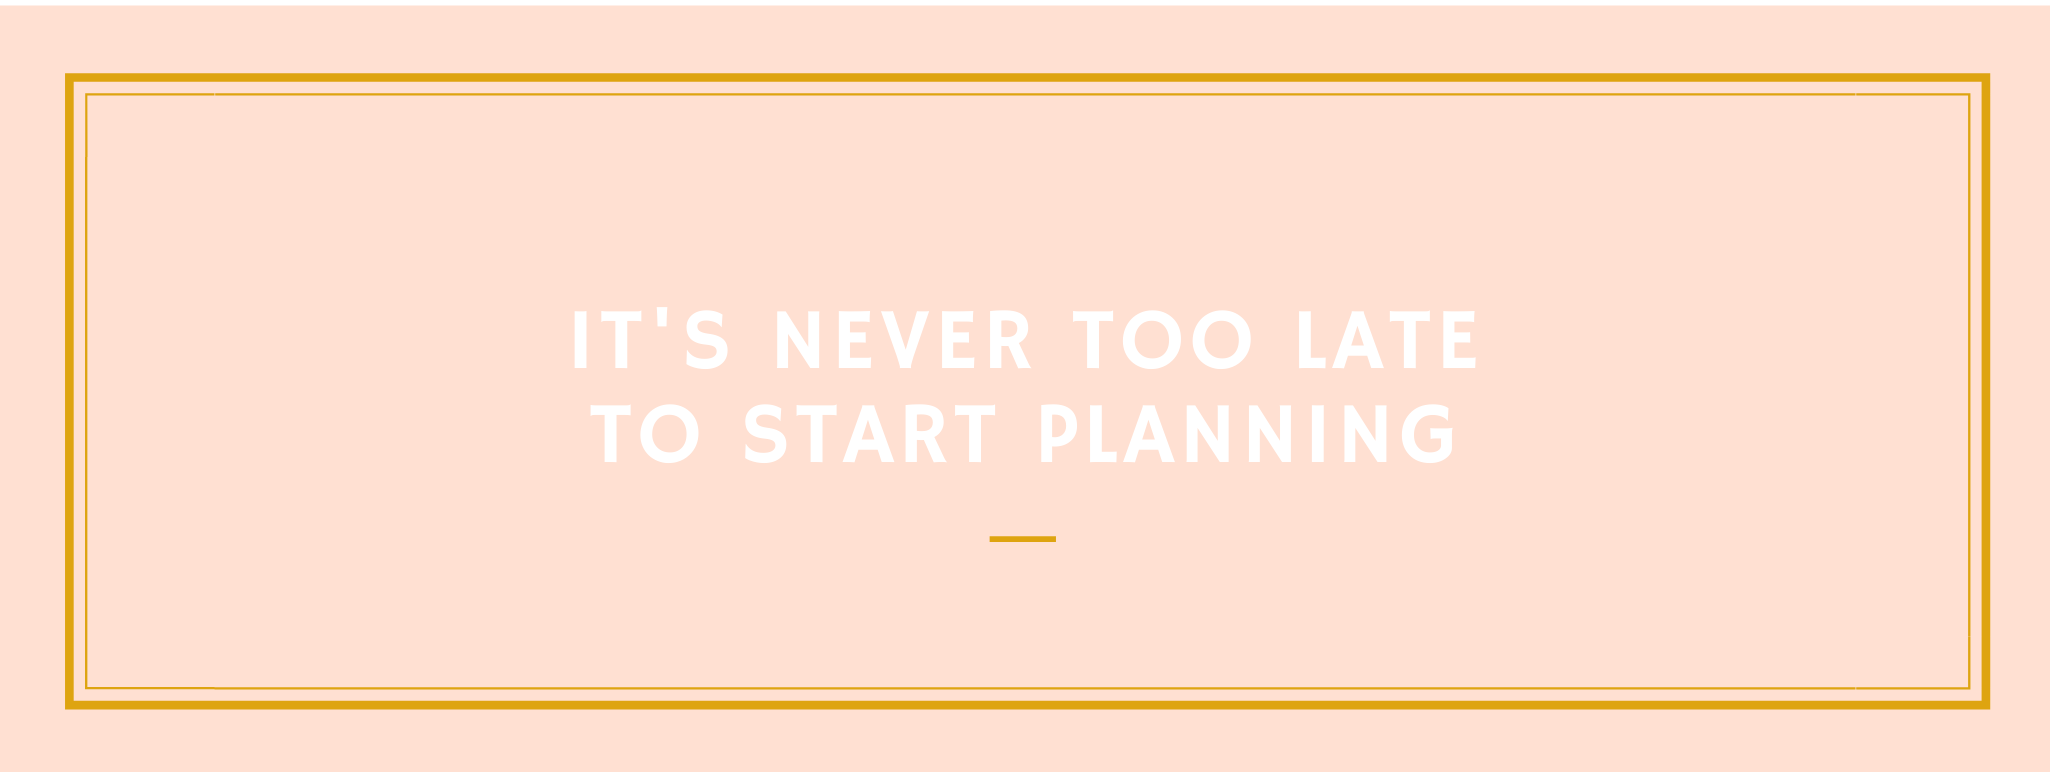 its never too late to start planning